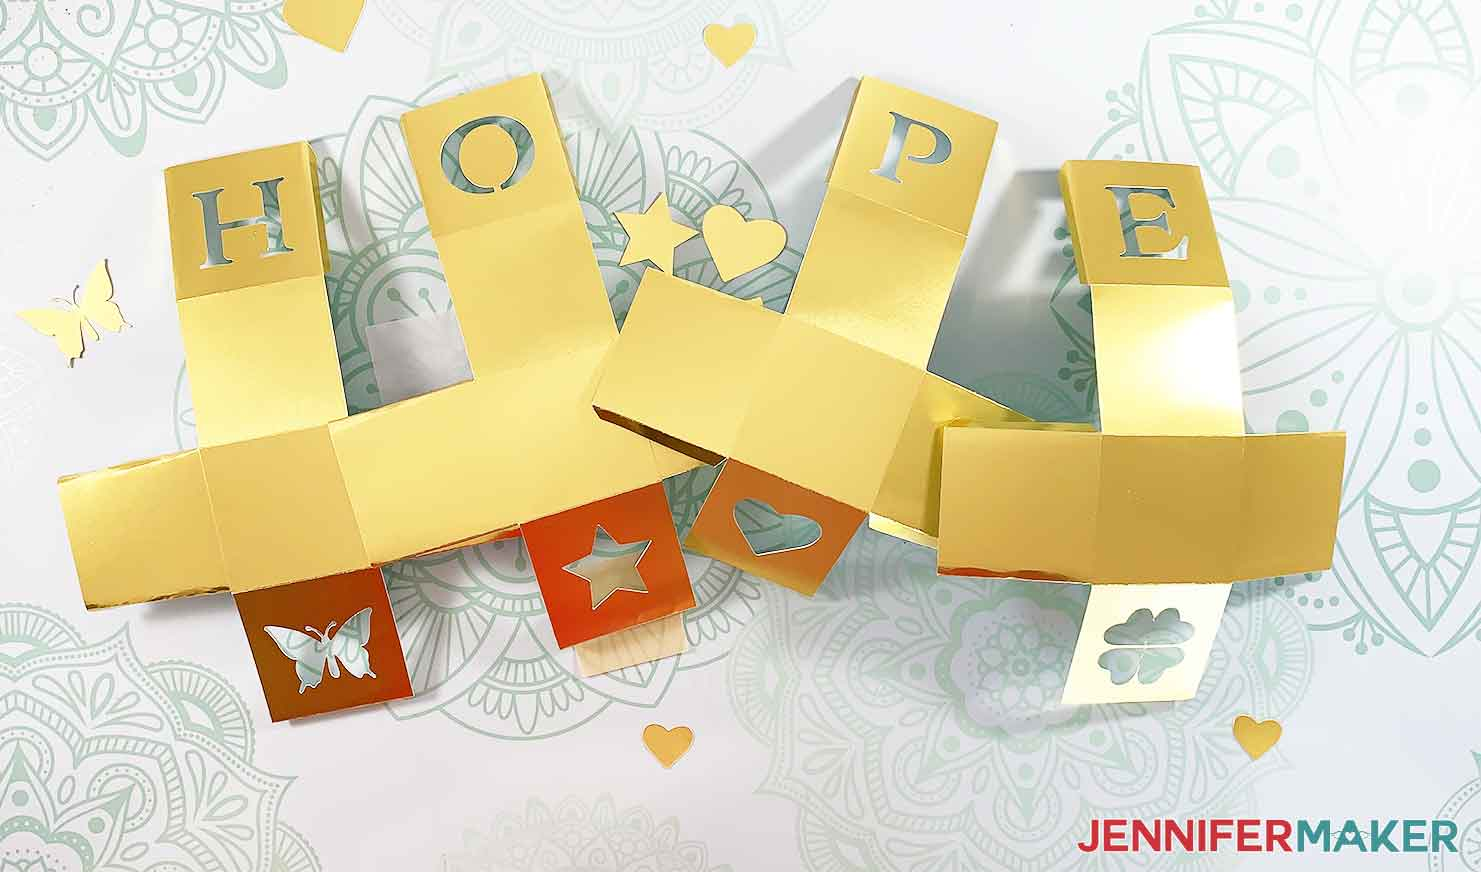 HOPE-Light-Up-Letter-Blocks-JenniferMaker-Folded-Blocks